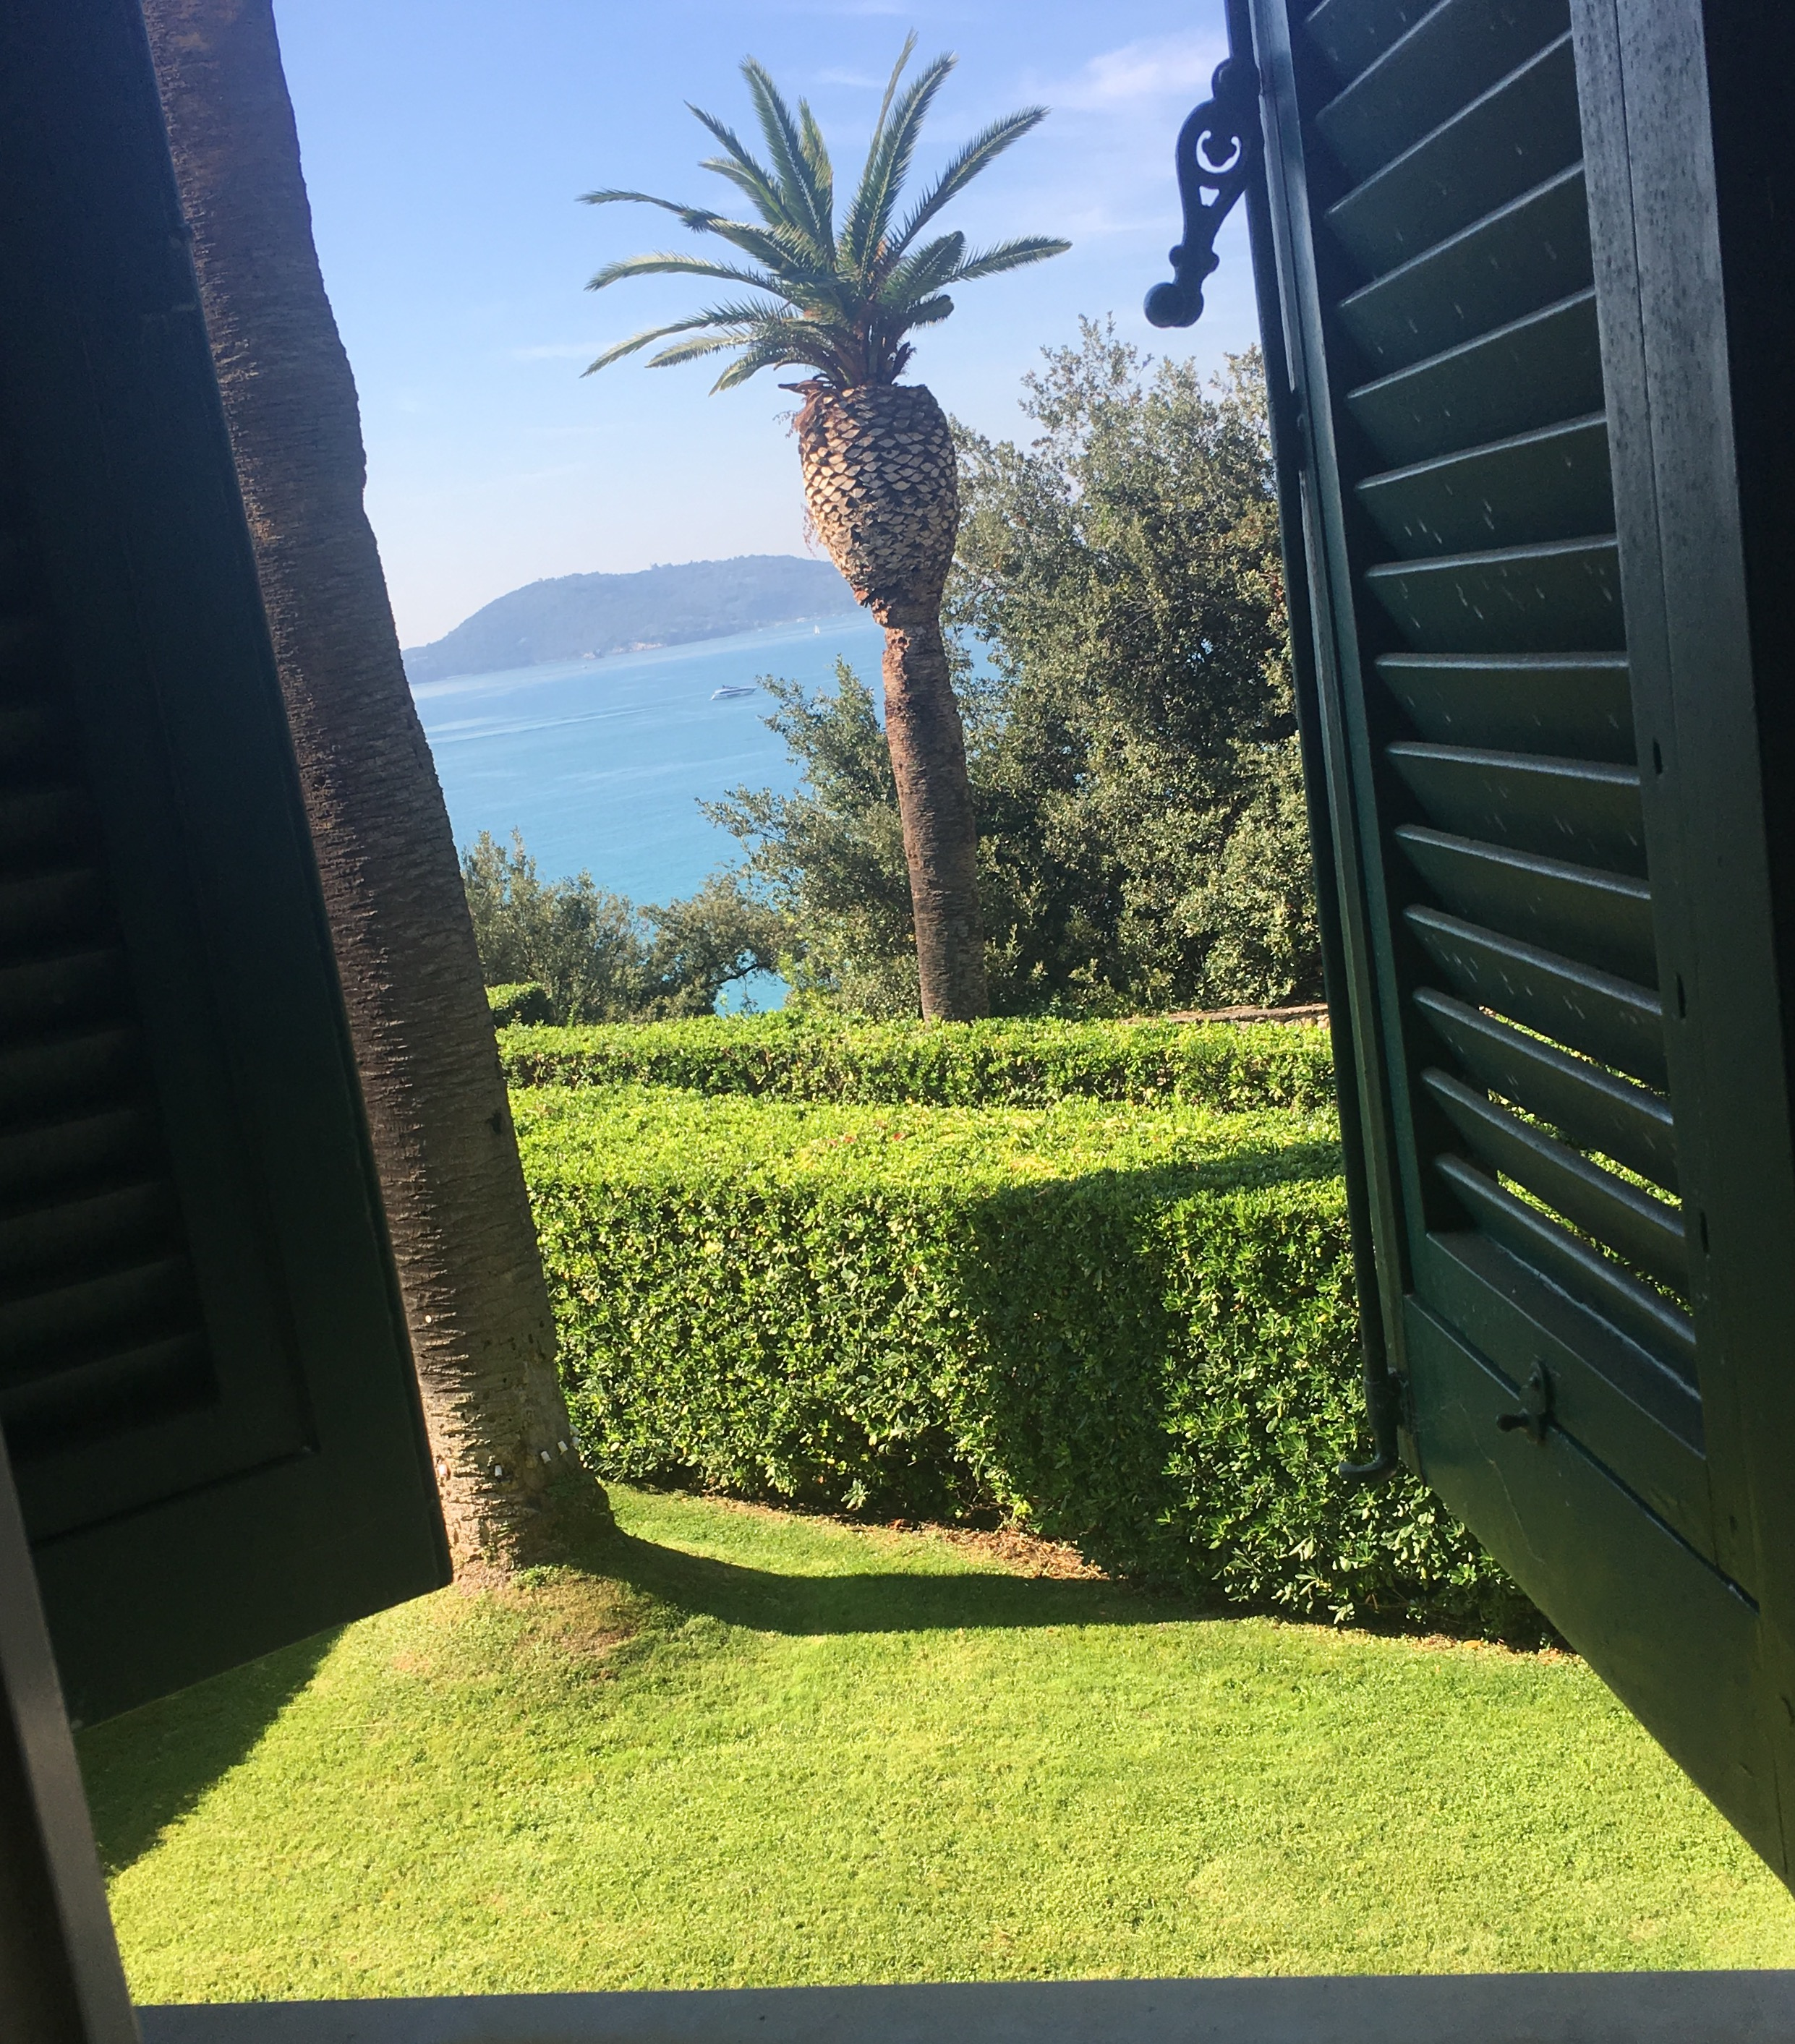 italian coast, wedding venue with a view, view of the sea, breathtaking views, wedding venue view, getting married in Italy,